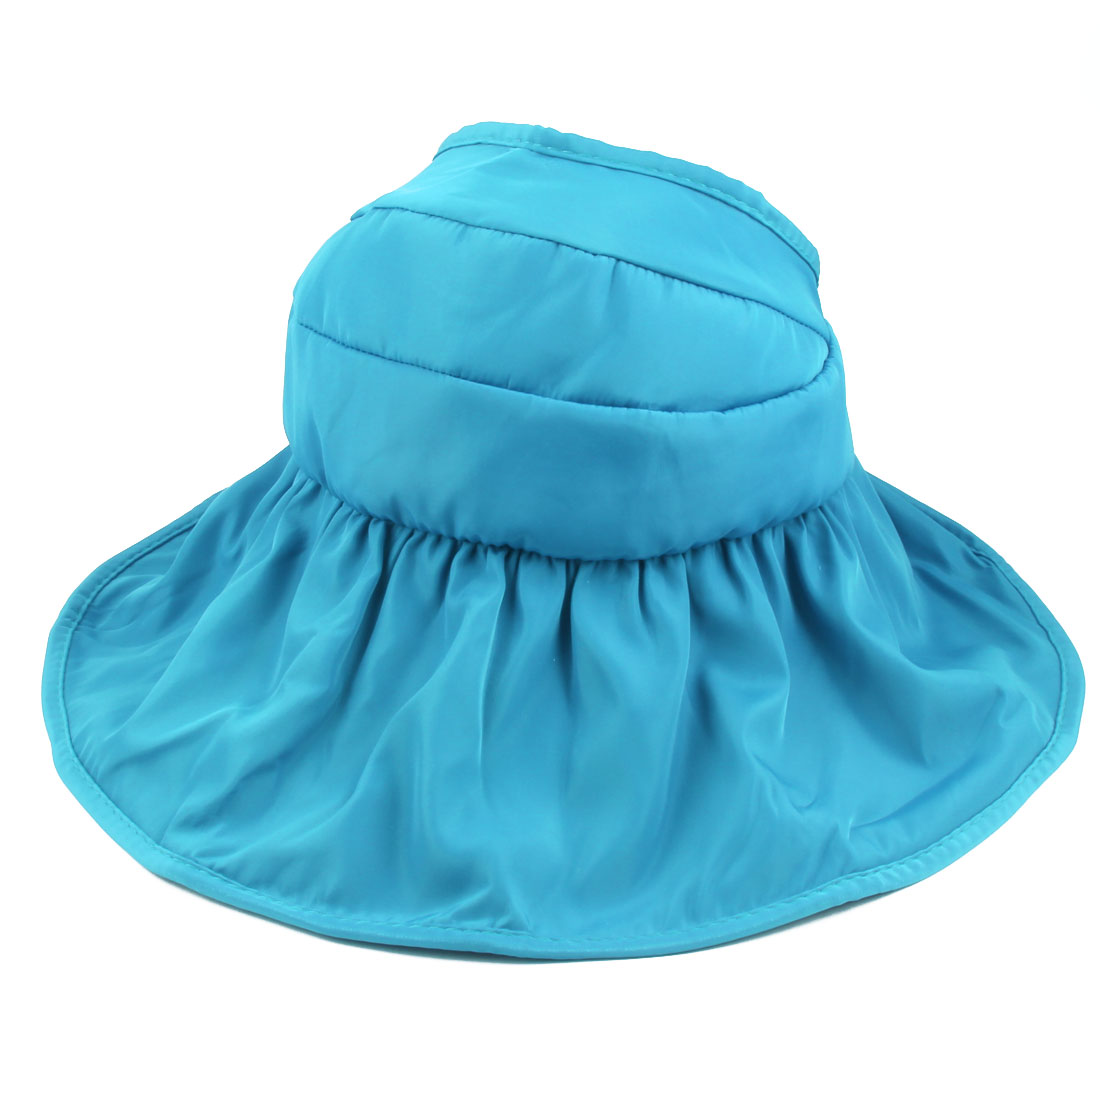 Woman Lady Summer Outdoor Holiday Wide Floppy Brim Foldable Visor Cap Sun Hat Sky Blue